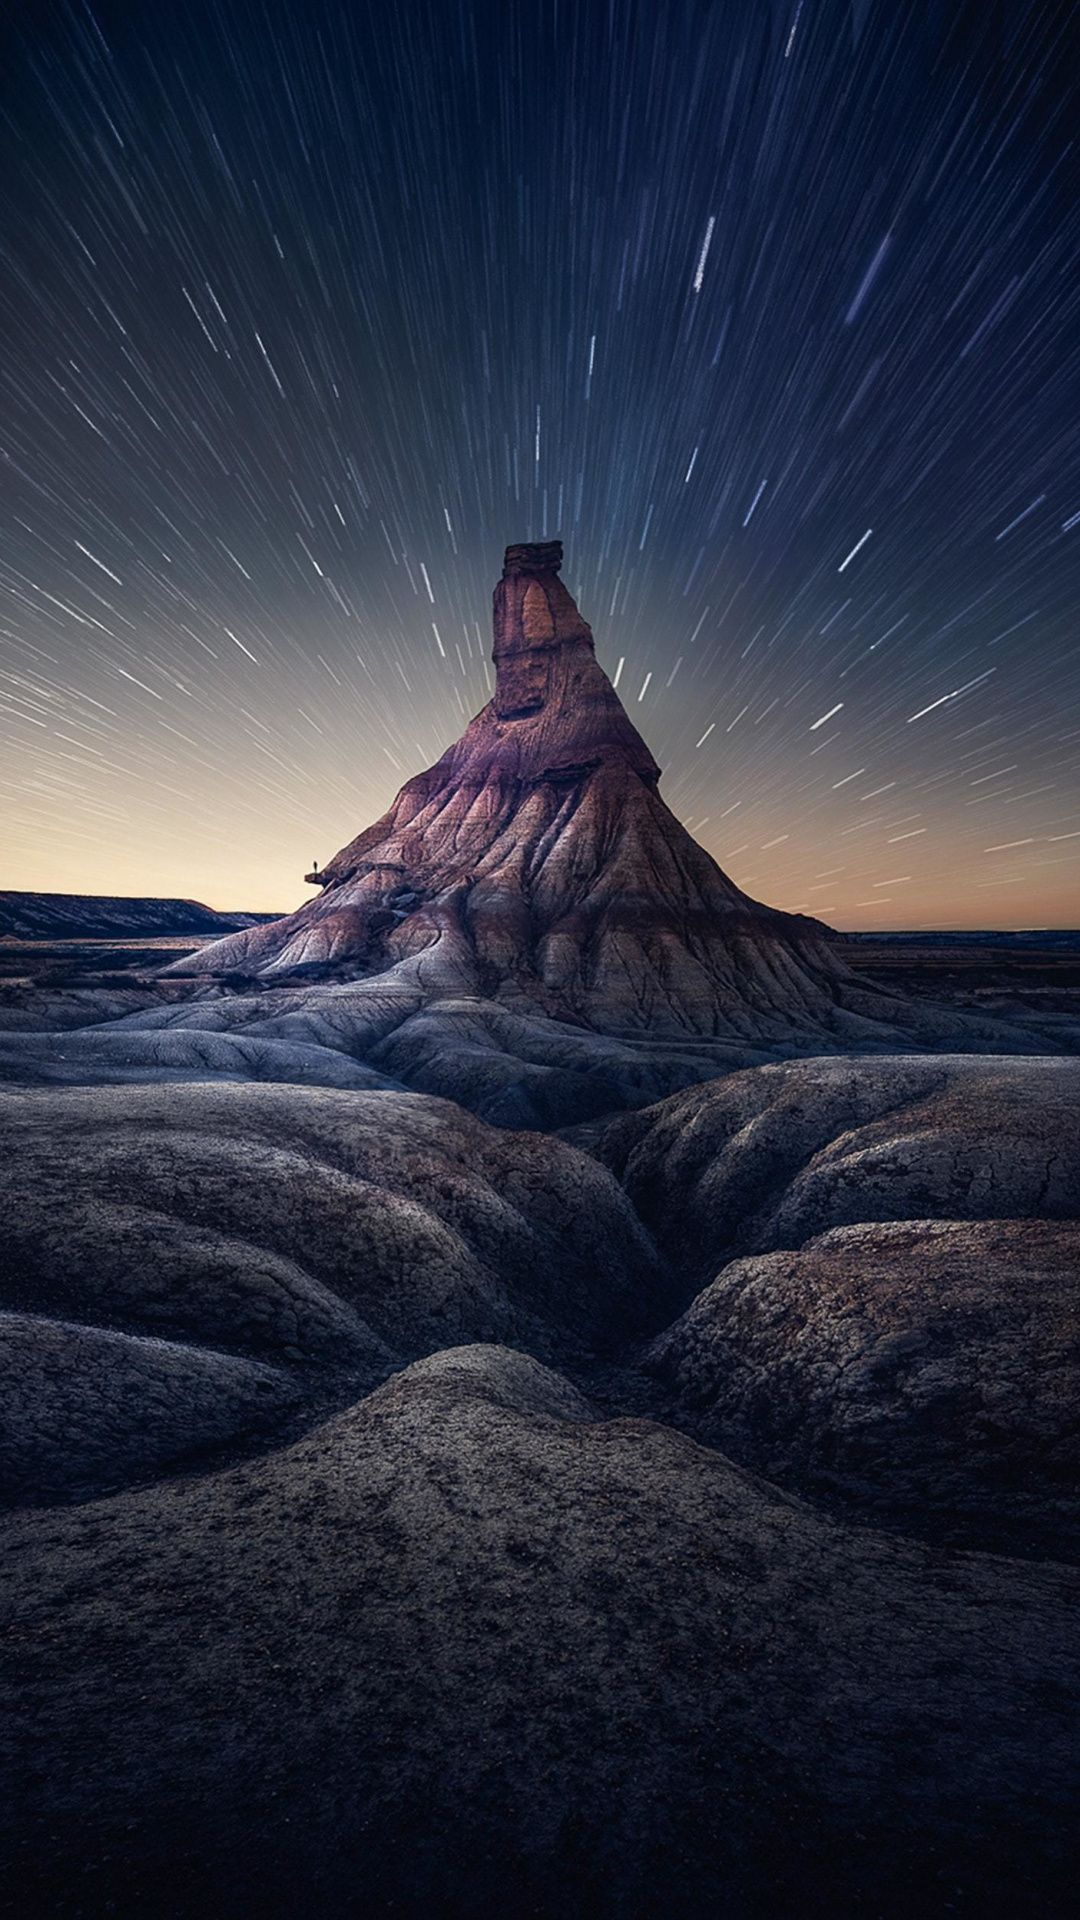 cliff time lapse starry night landscape 1080x1920 wallpaper